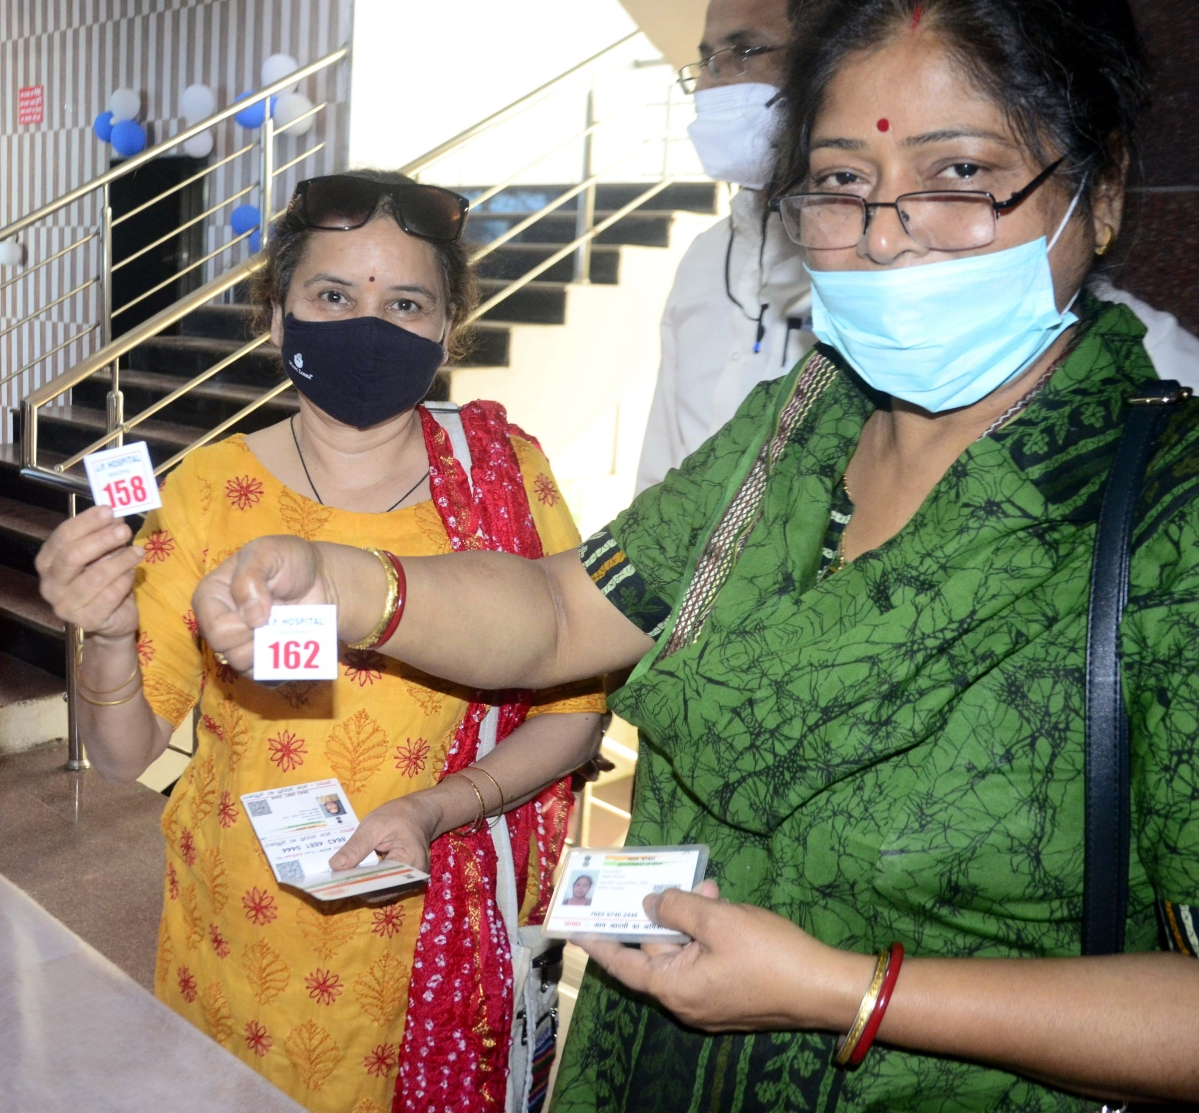 People coming for vaccine show their token number at JP hospital in Bhopal